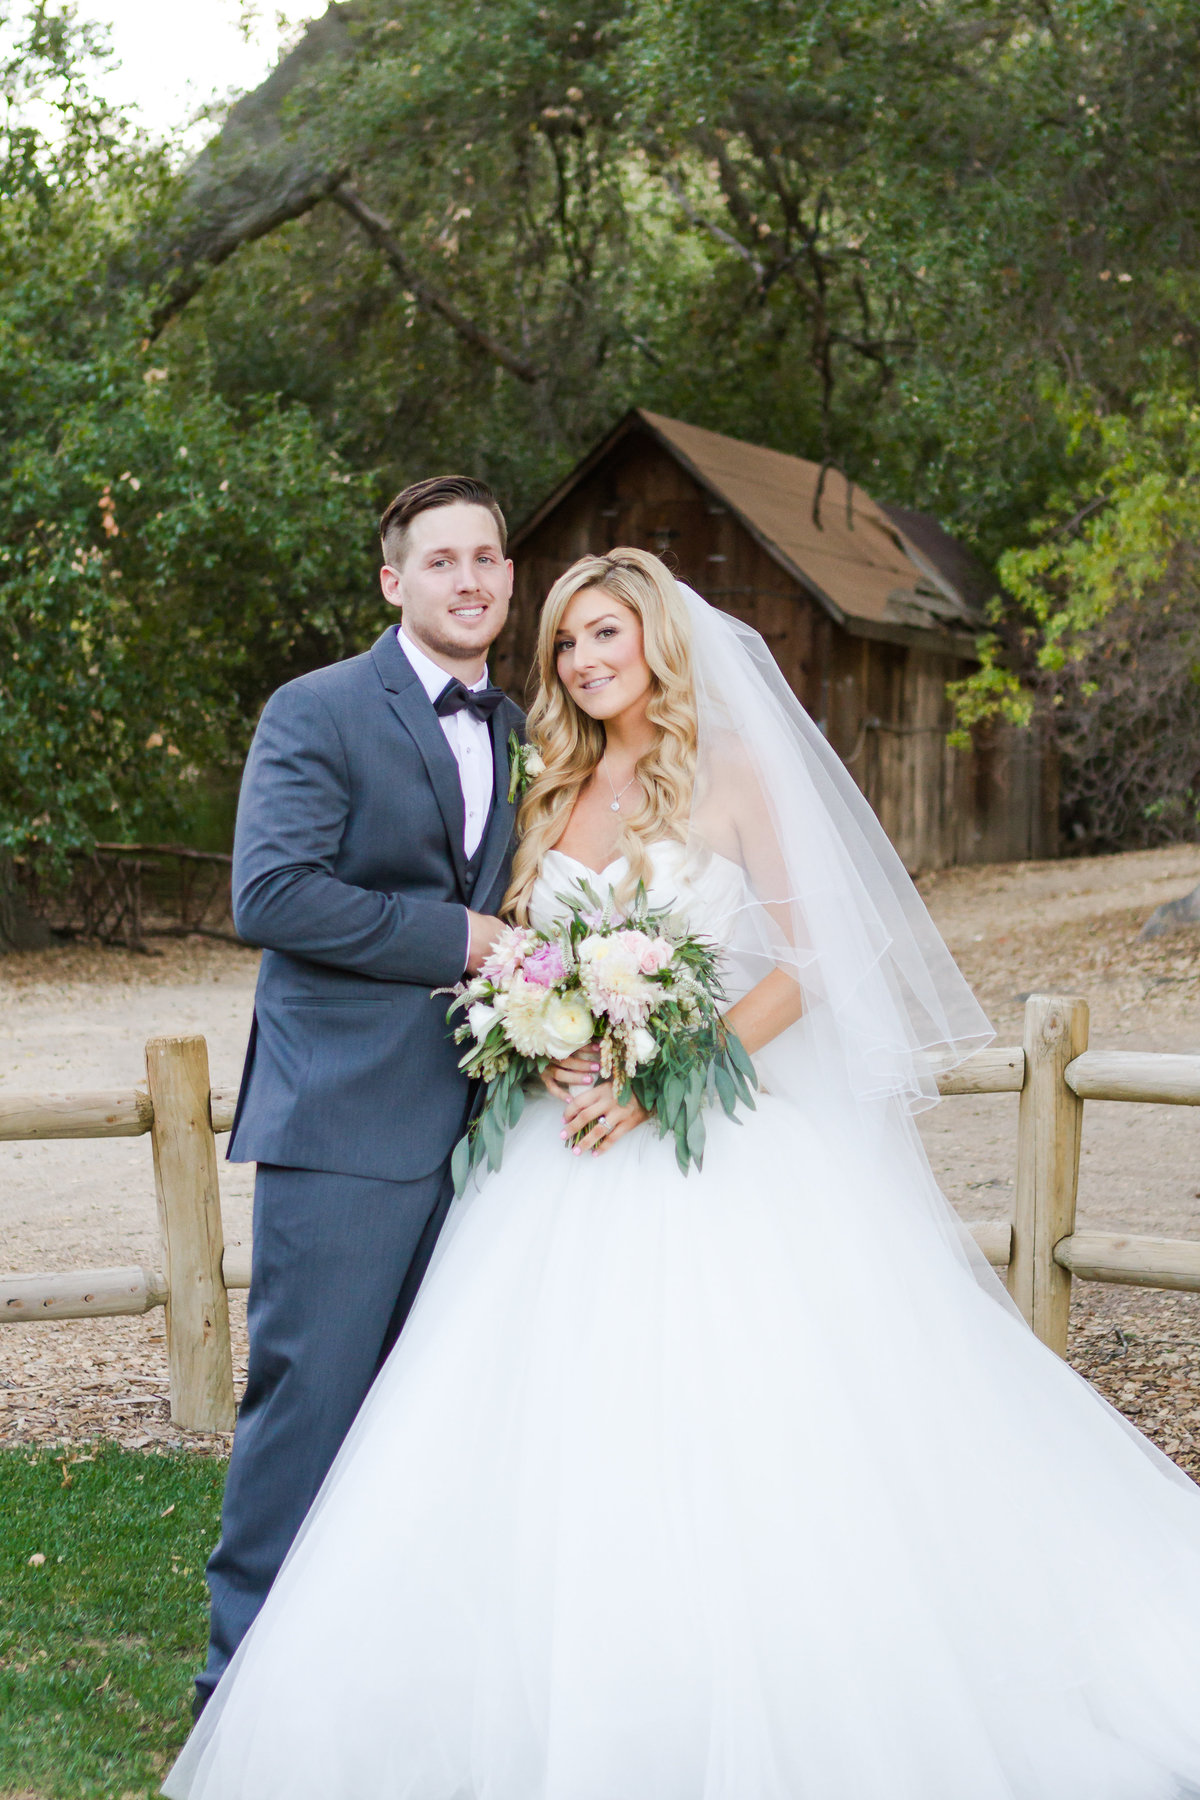 39-Temecula Wedding Pictures-Temecula Creek Inn_